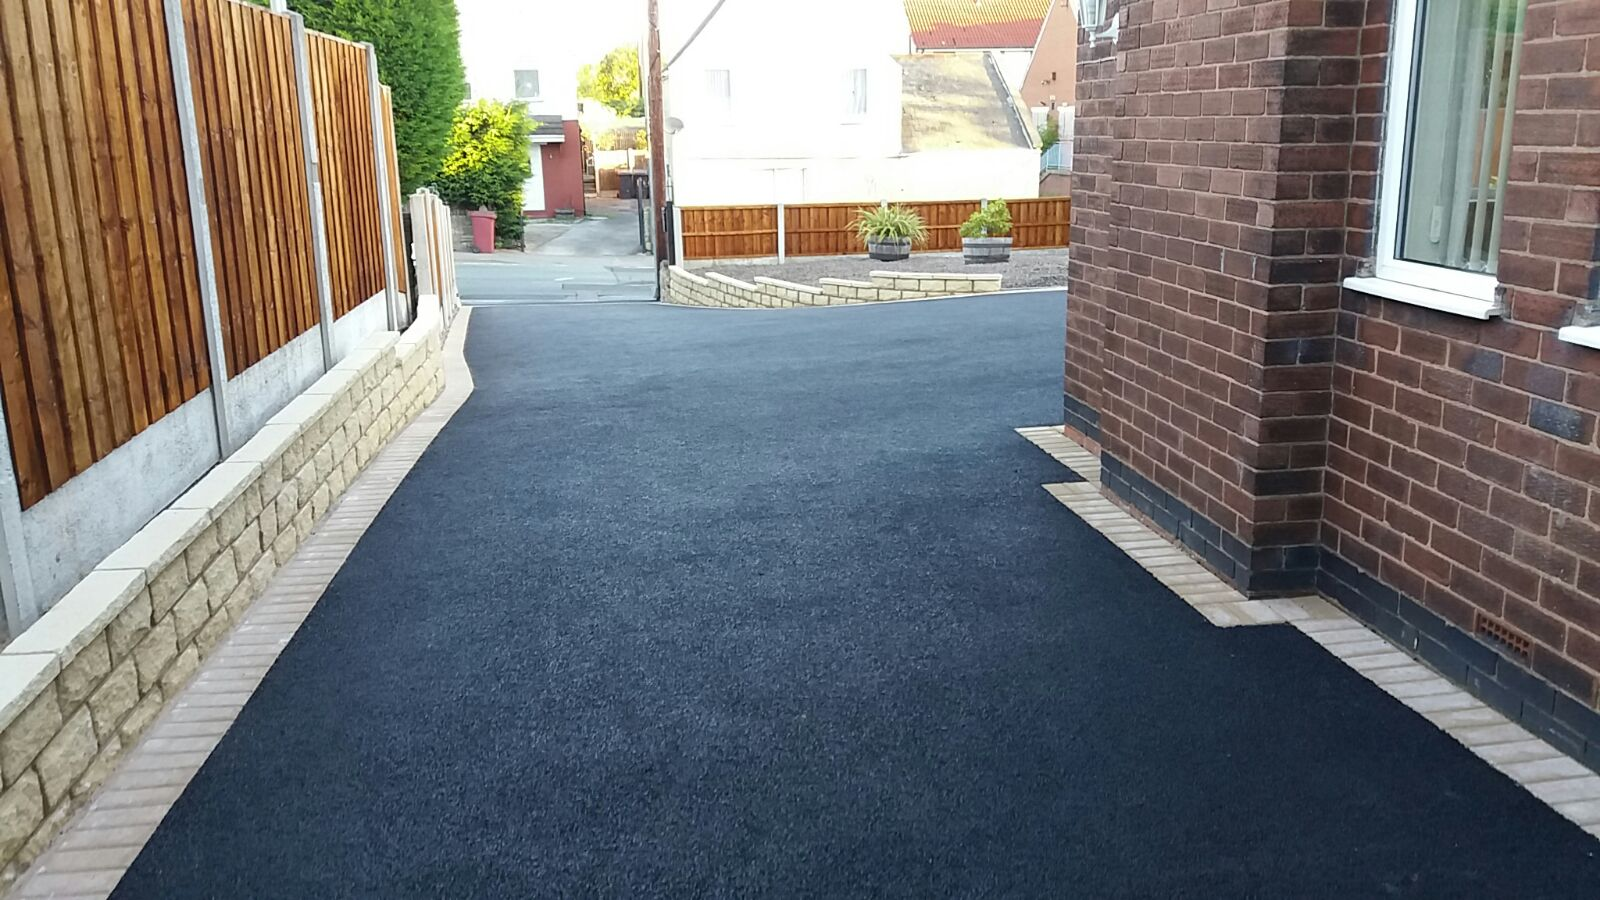 Tarmac Driveways in Chesterfield